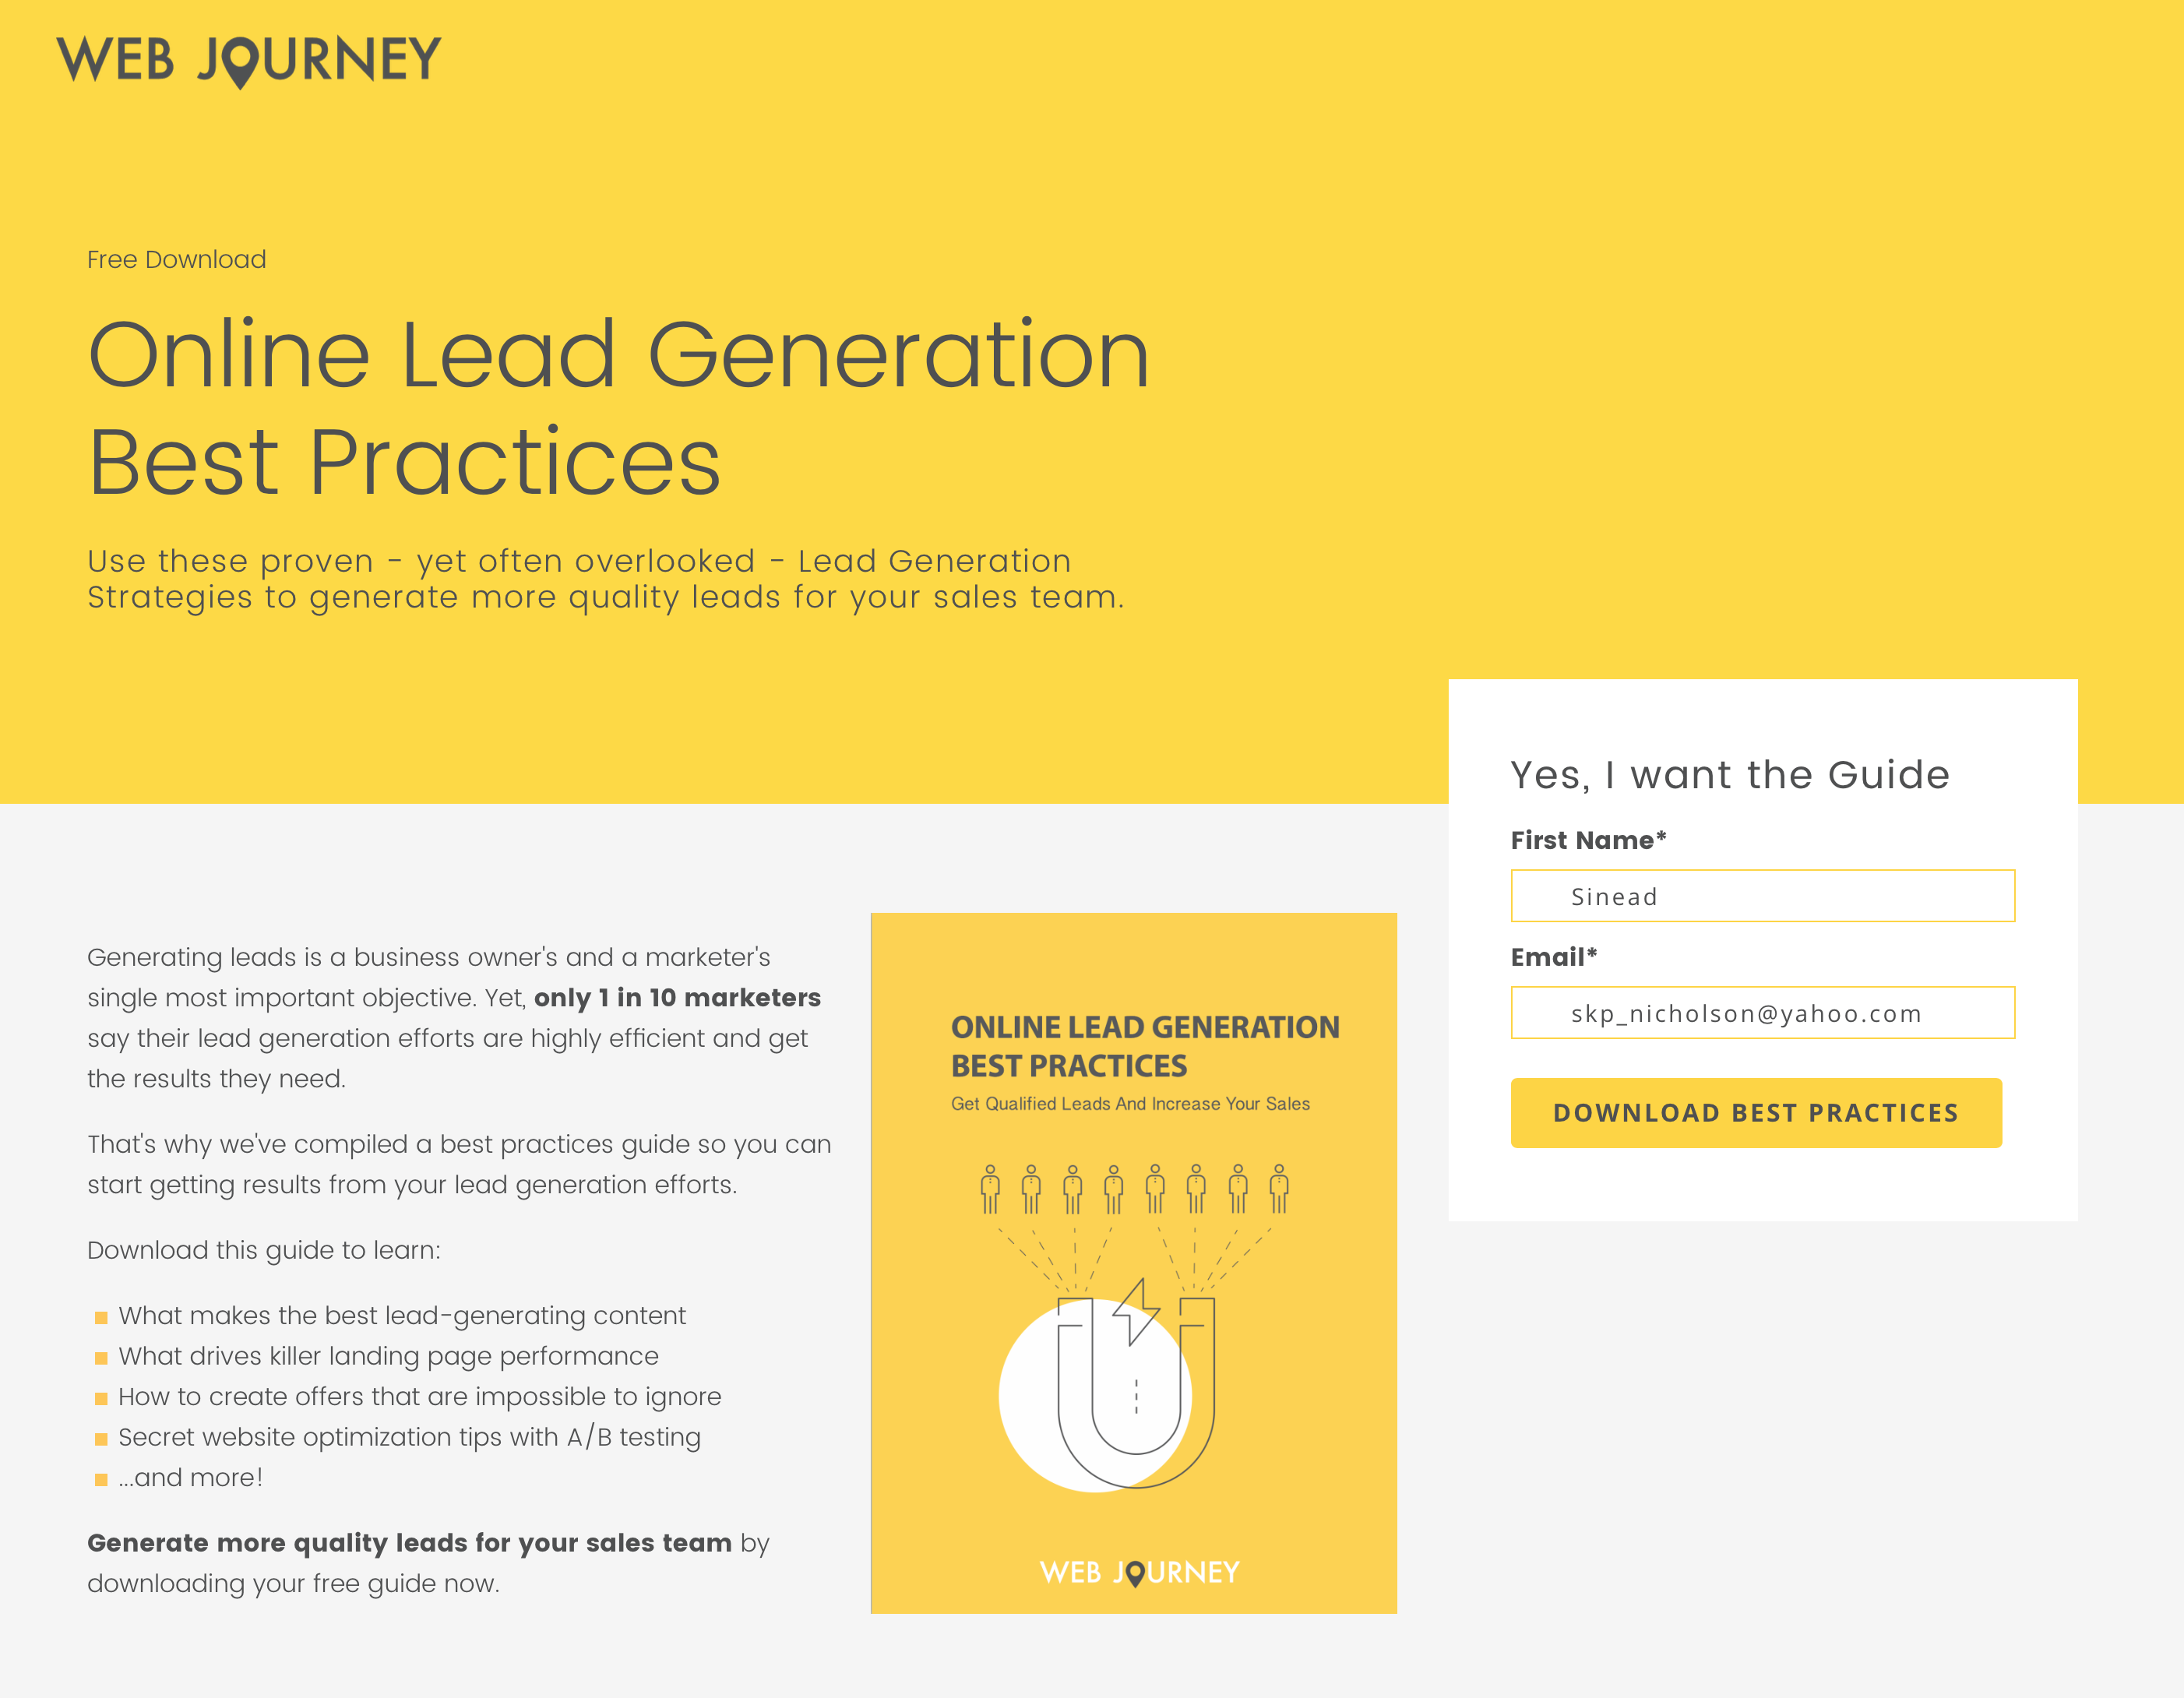 Guide To Running An Inbound Marketing Campaign - Inbound Landing Page Example